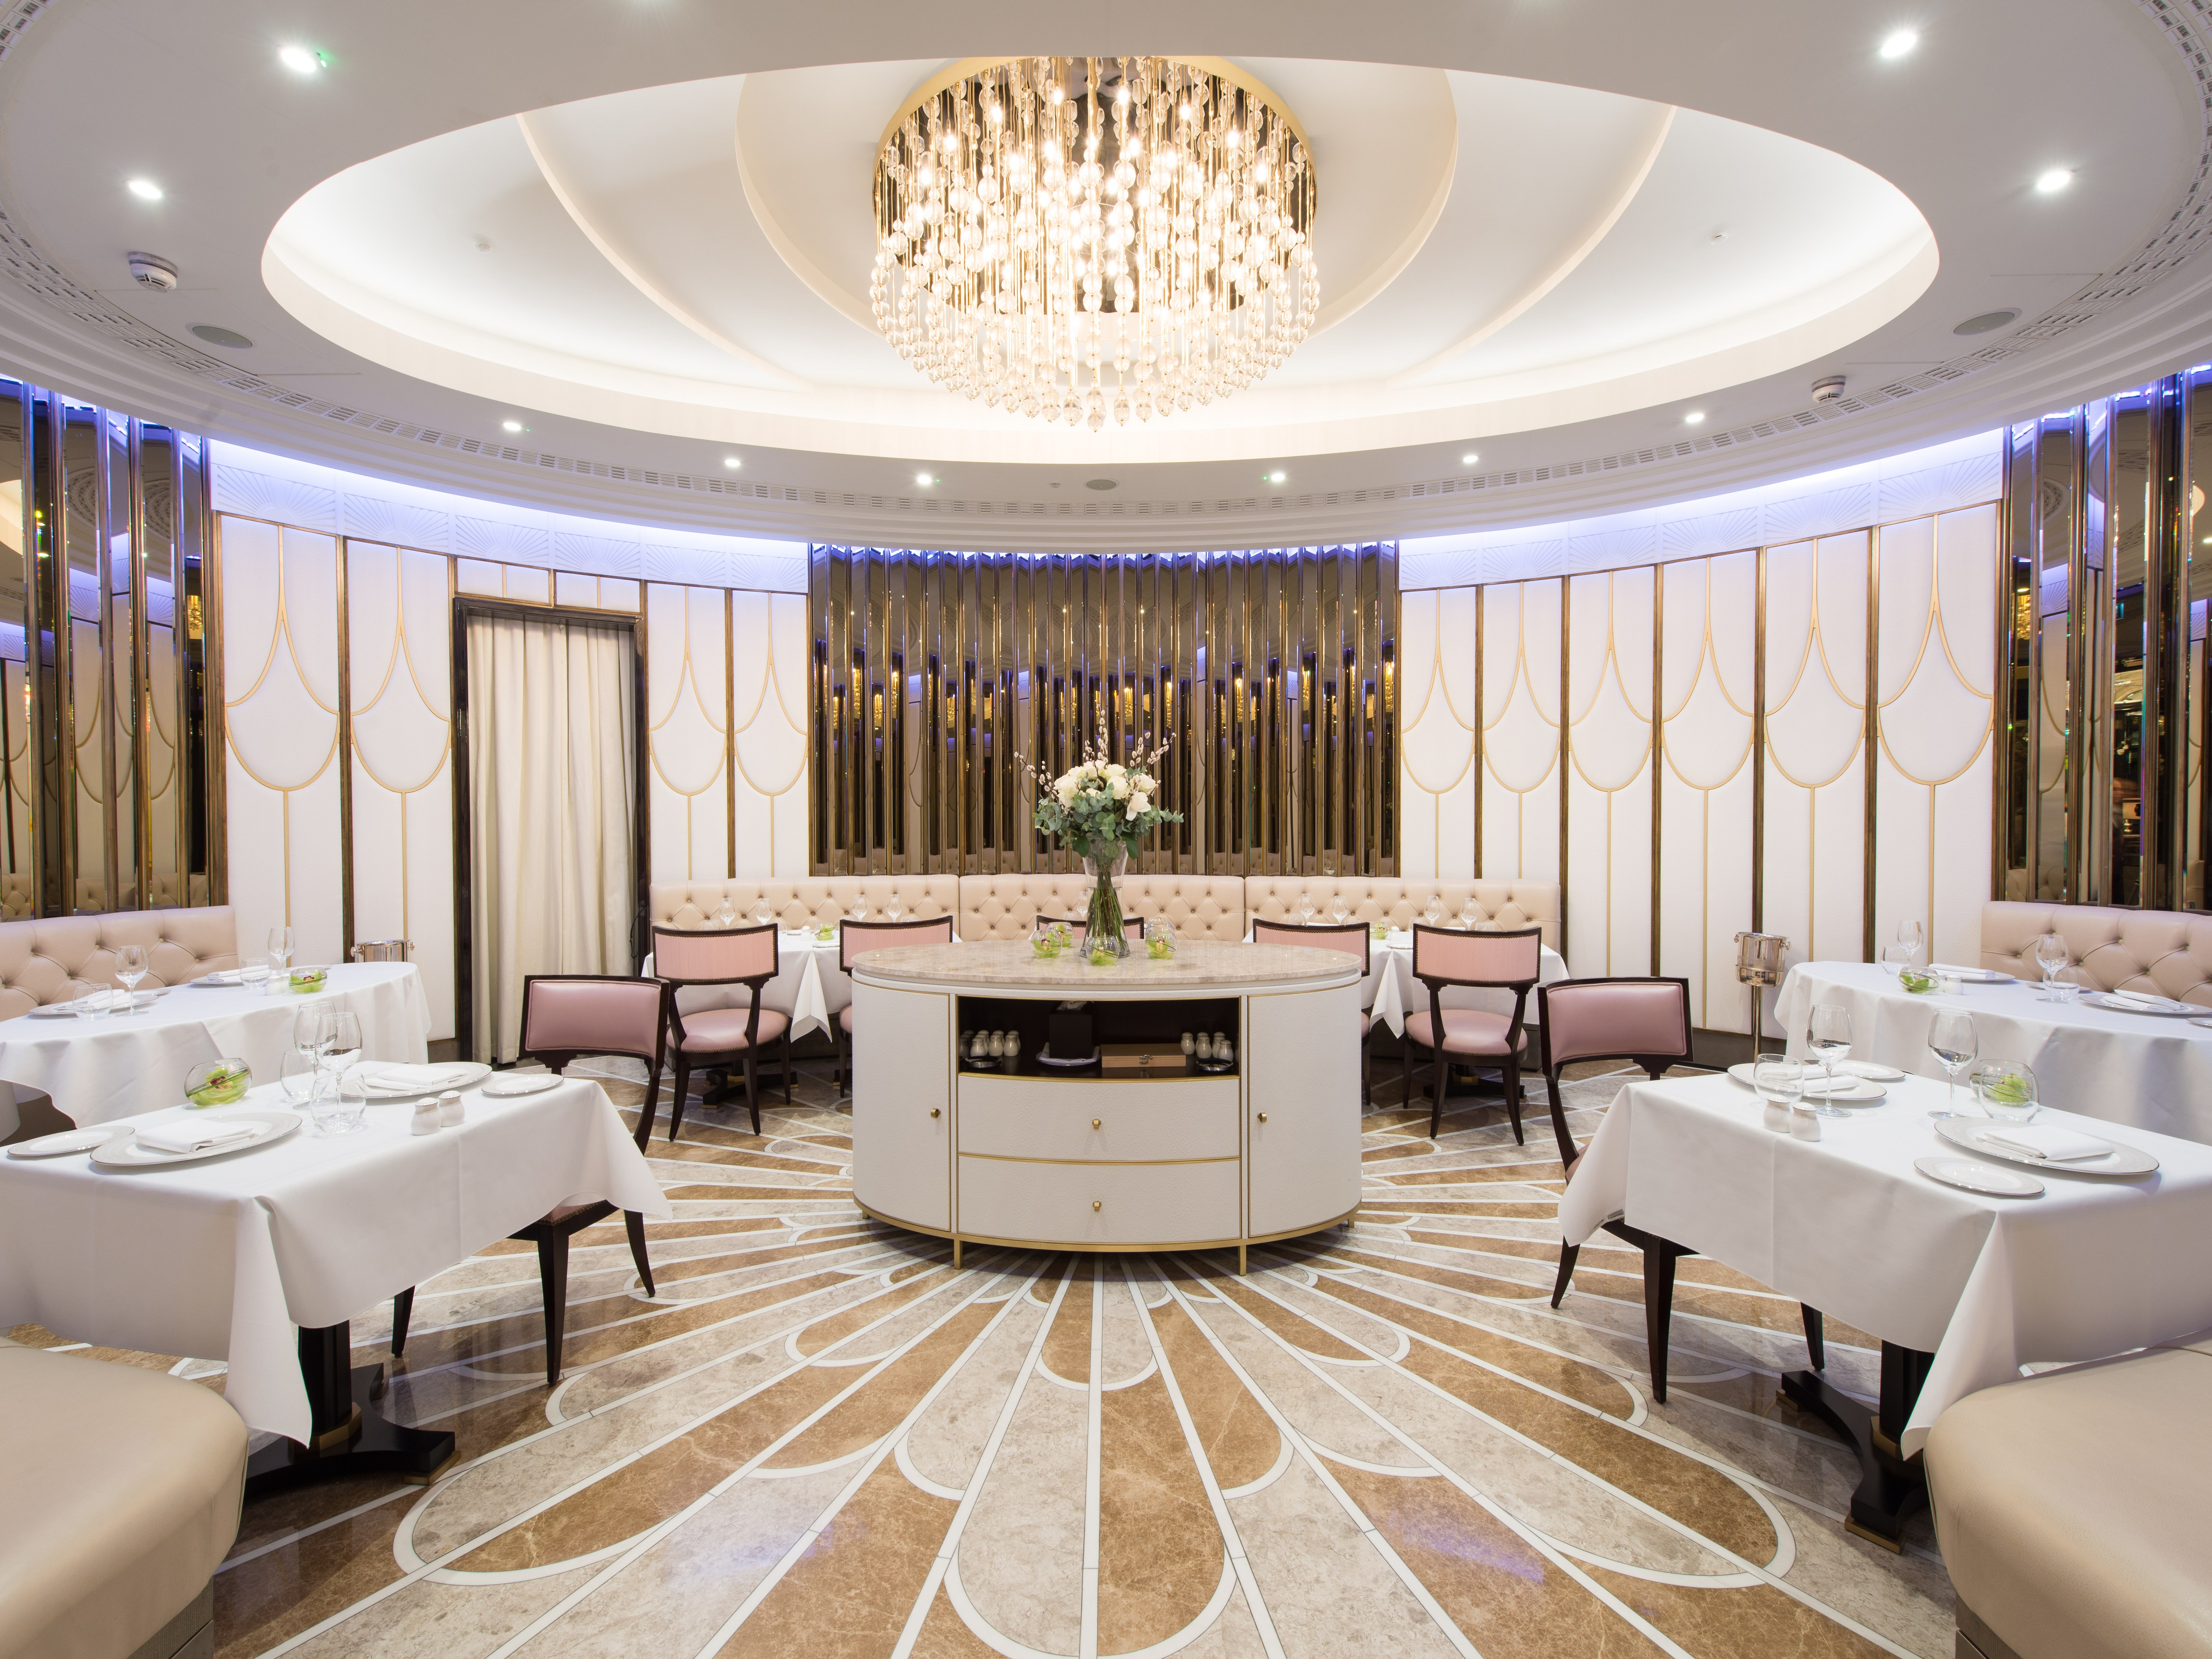 The Oval Restaurant at The Wellesley Hotel - London